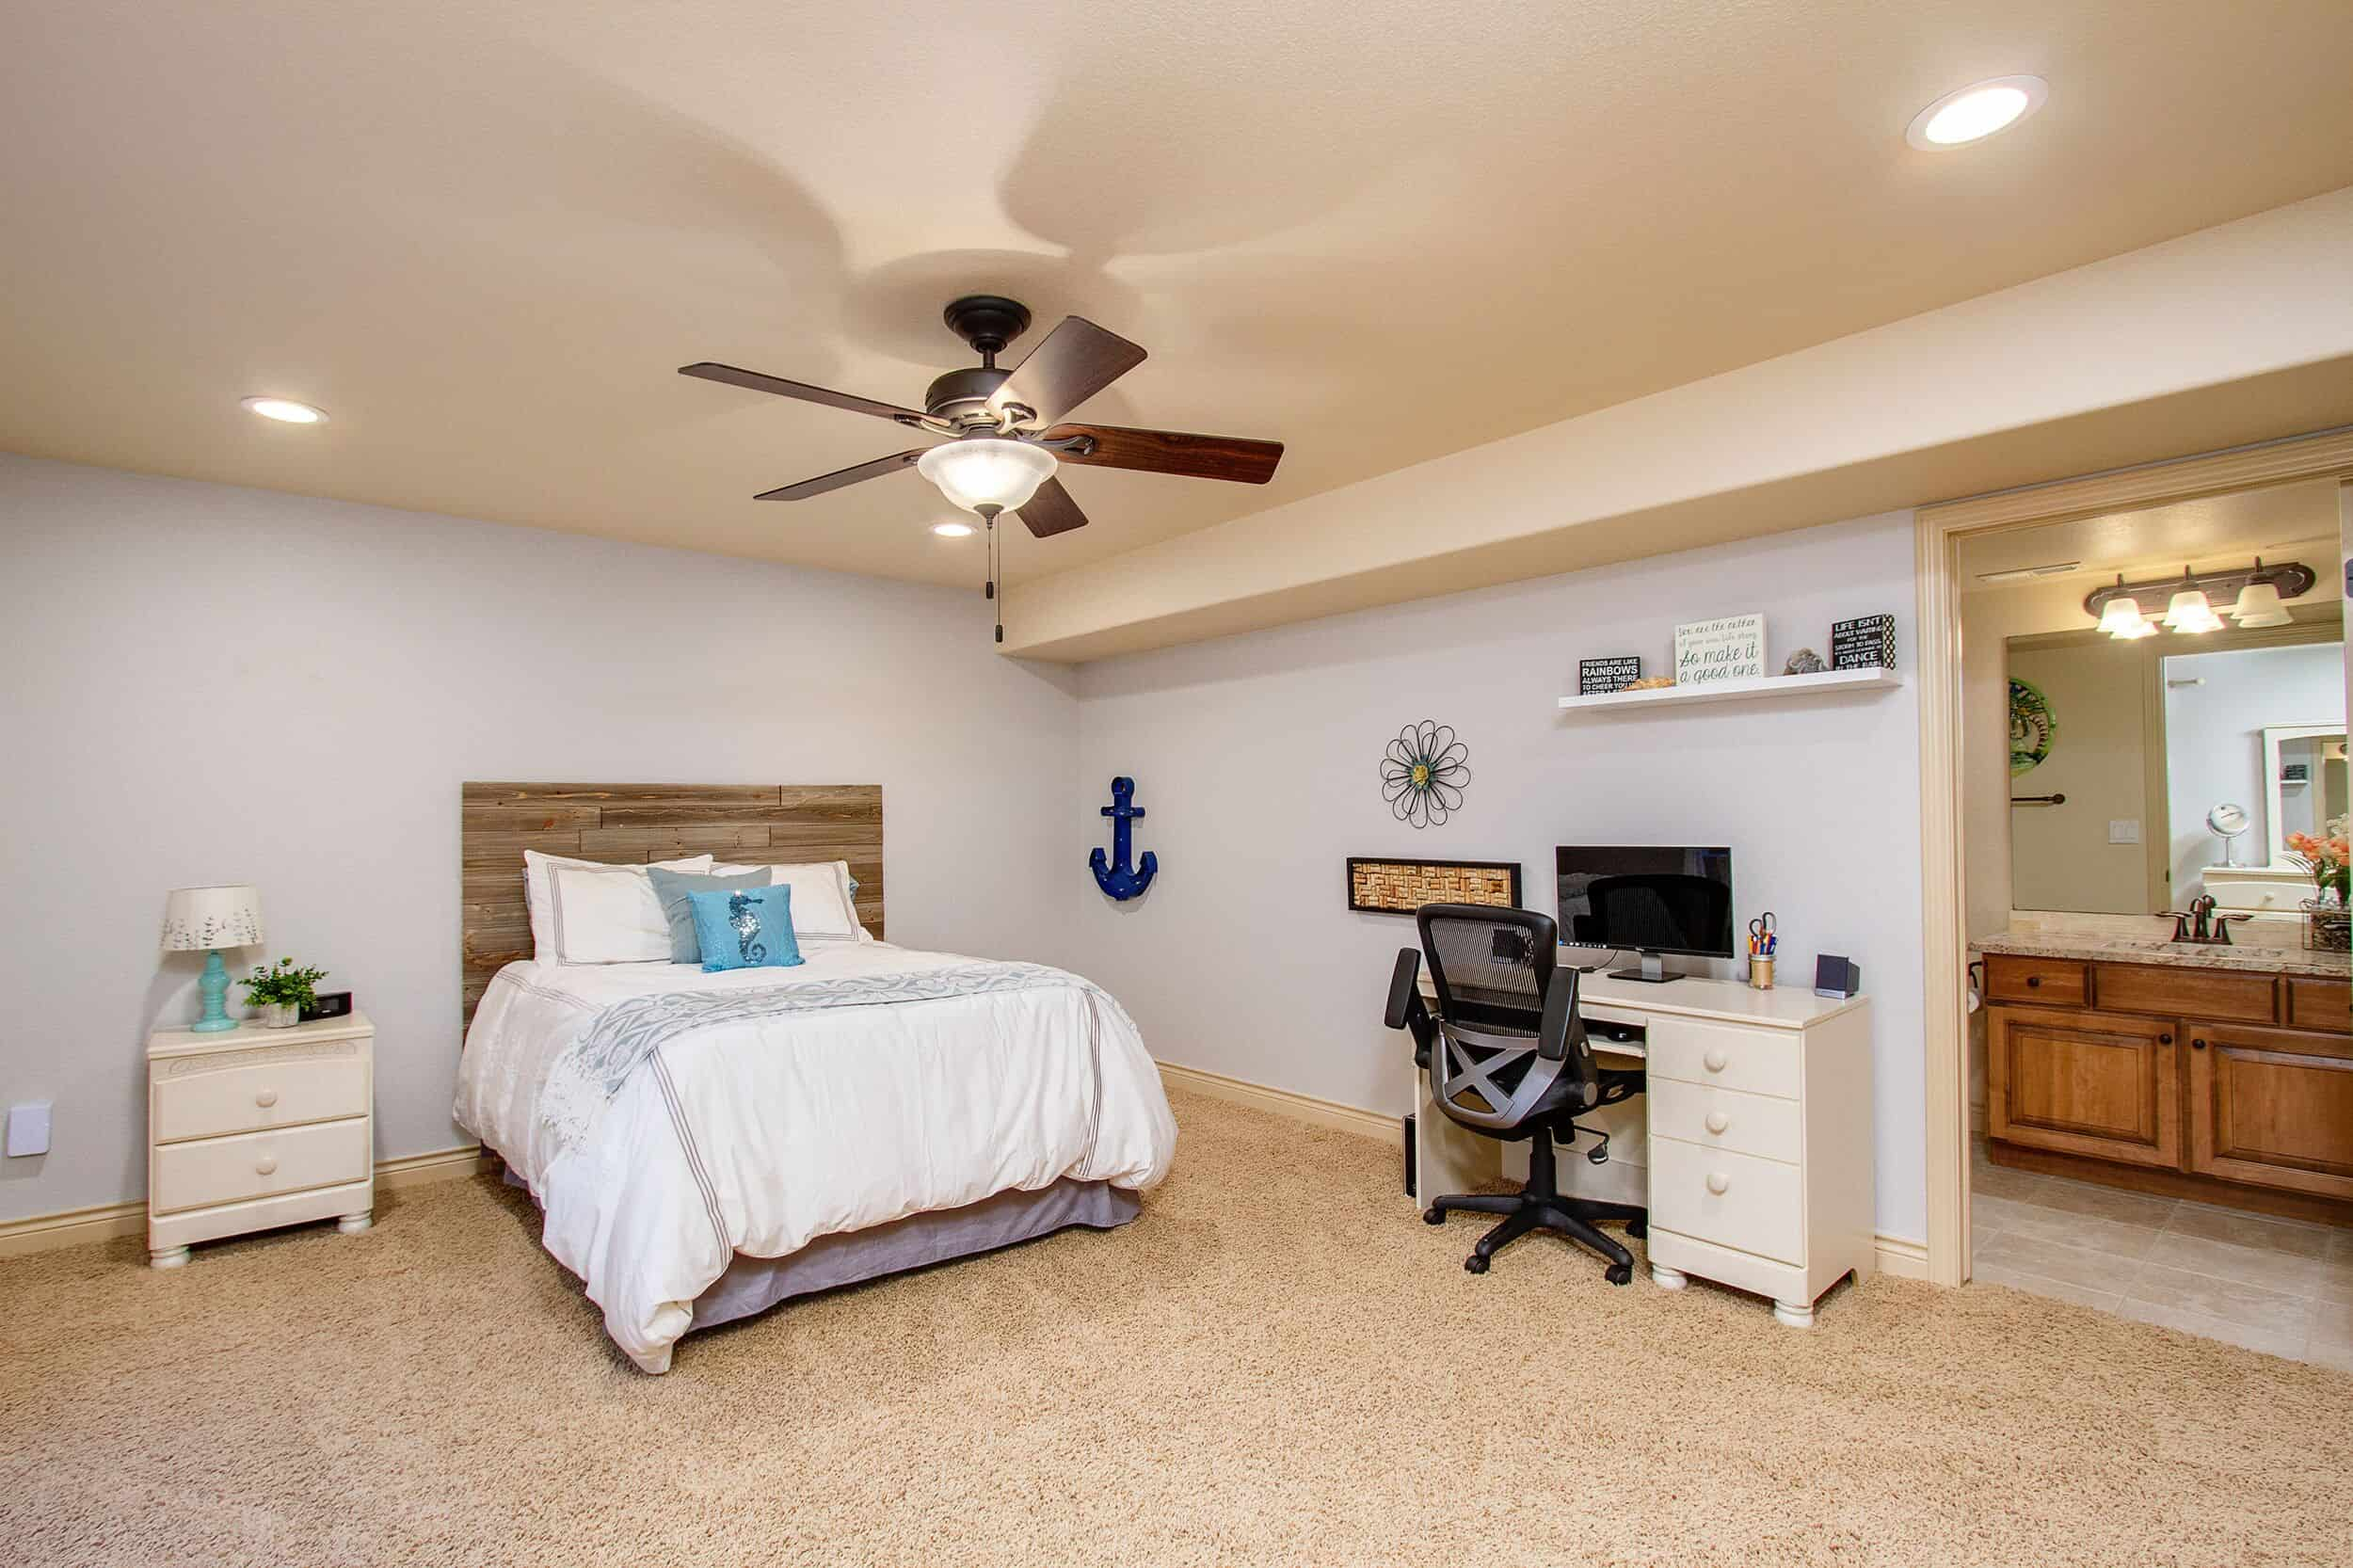 29 – Basement Bedroom into Basement Bathroom